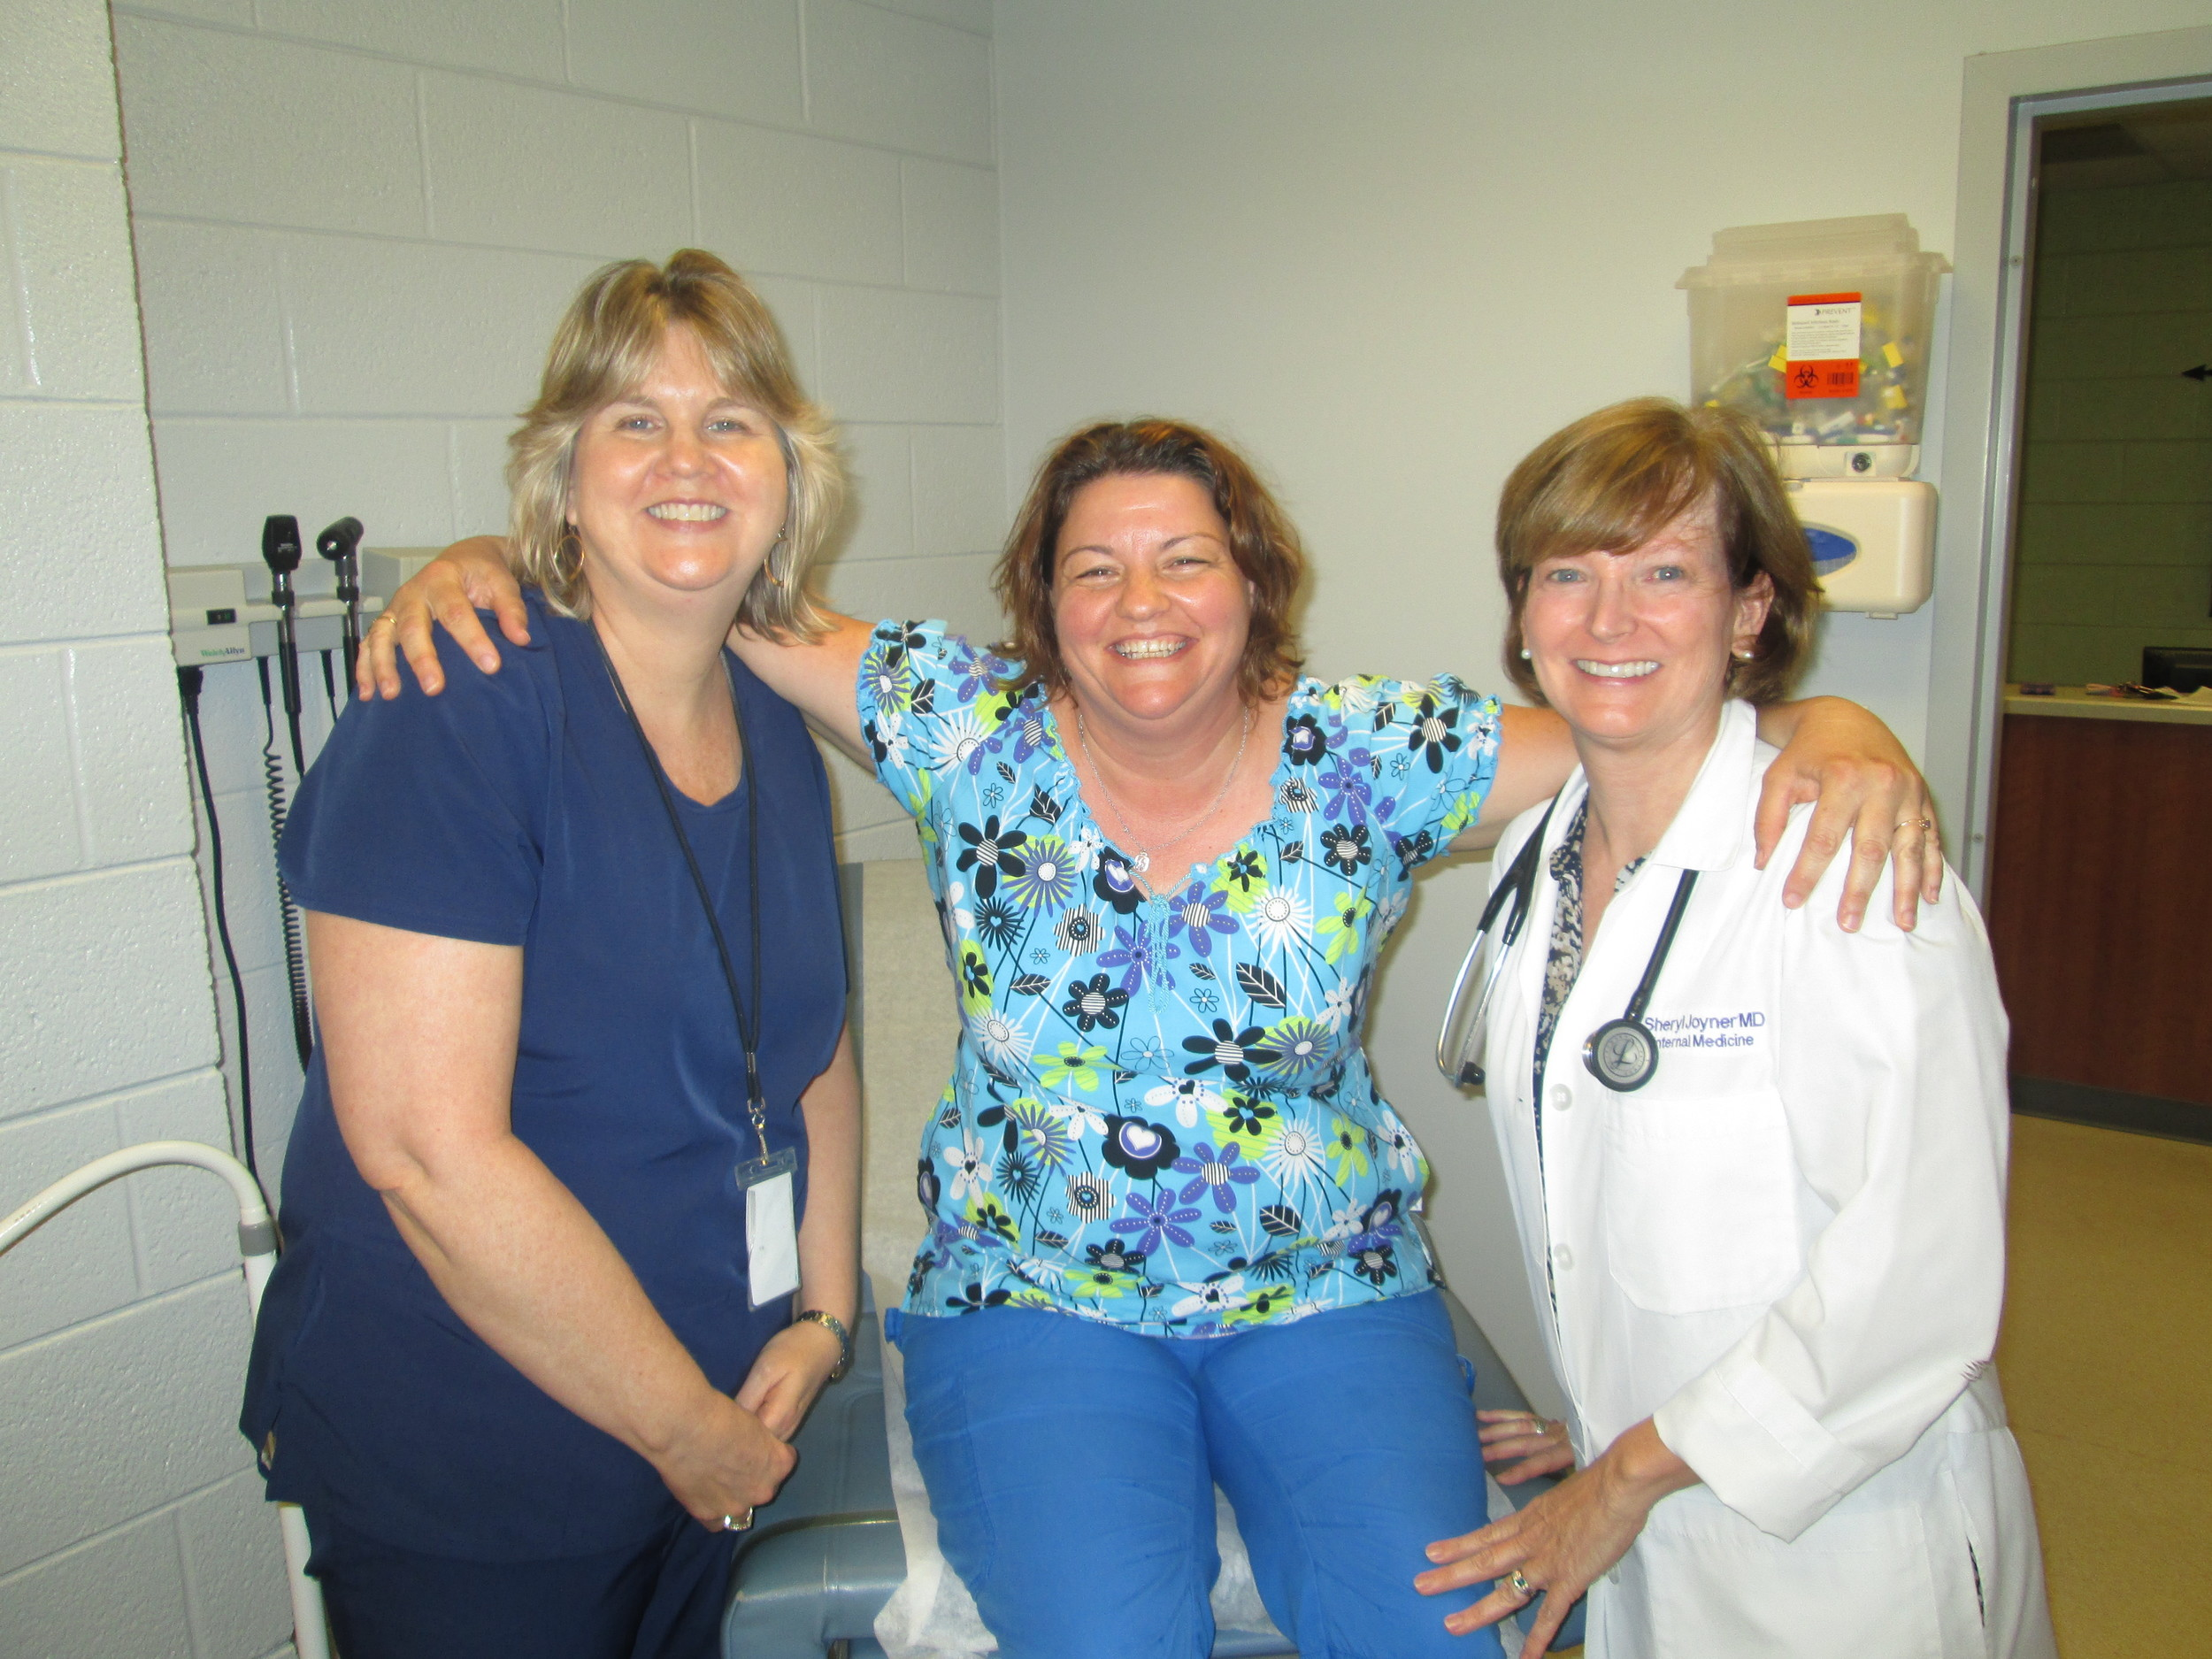 Patient Michelle Turner (middle) with Alliance's Leanne Ritter, MA and Dr. Sheryl Joyner.